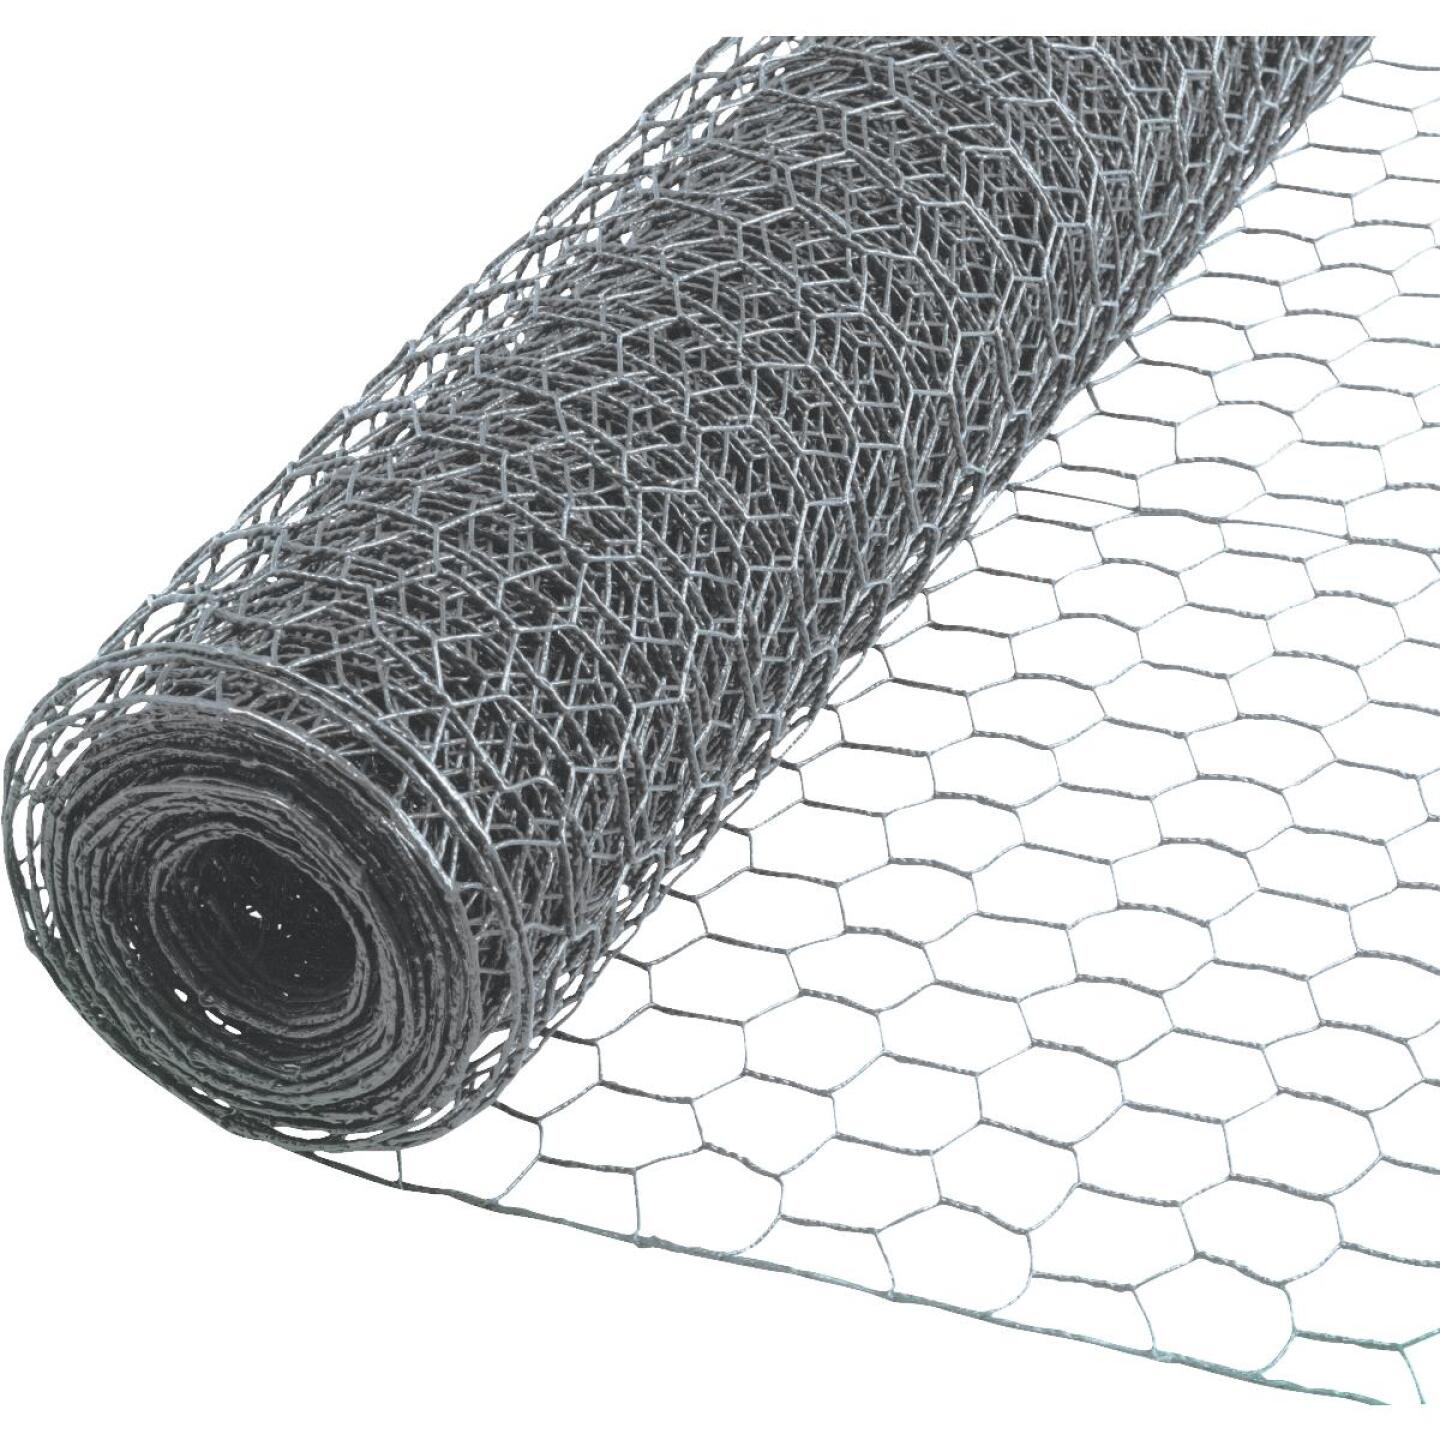 Do it 2 In. x 24 In. H. x 150 Ft. L. Hexagonal Wire Poultry Netting Image 1